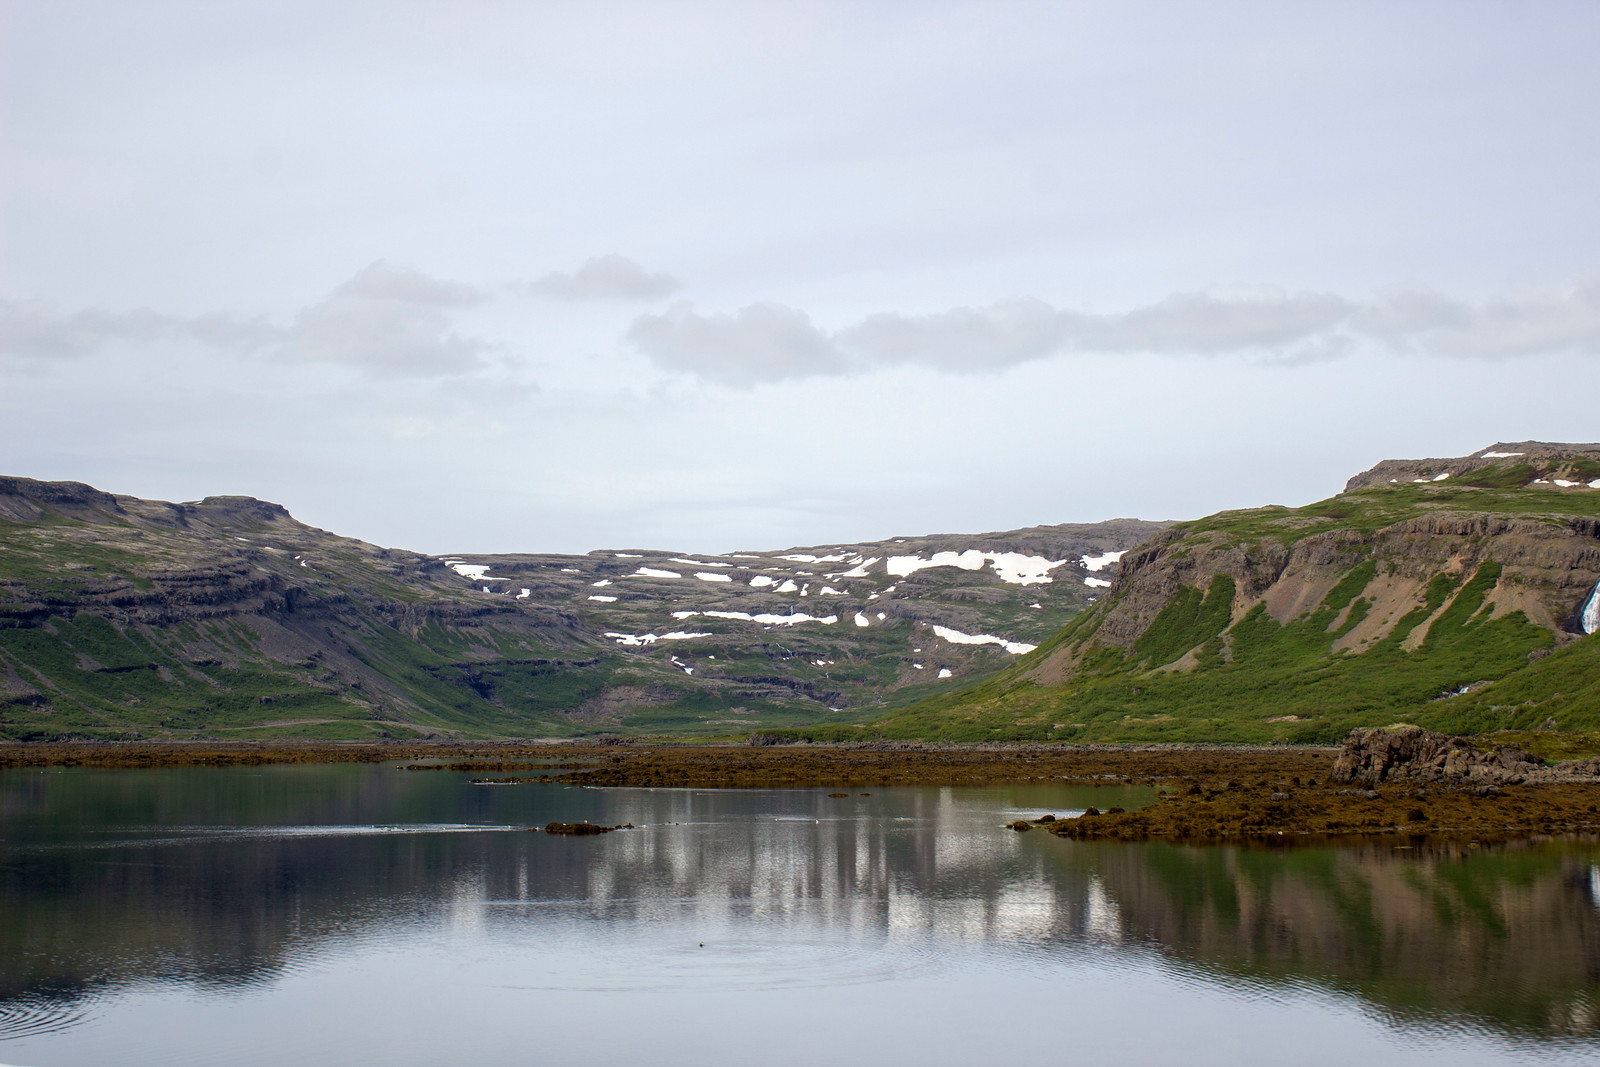 Driving through the Westfjords, Iceland, on our way to Latrabjarg.